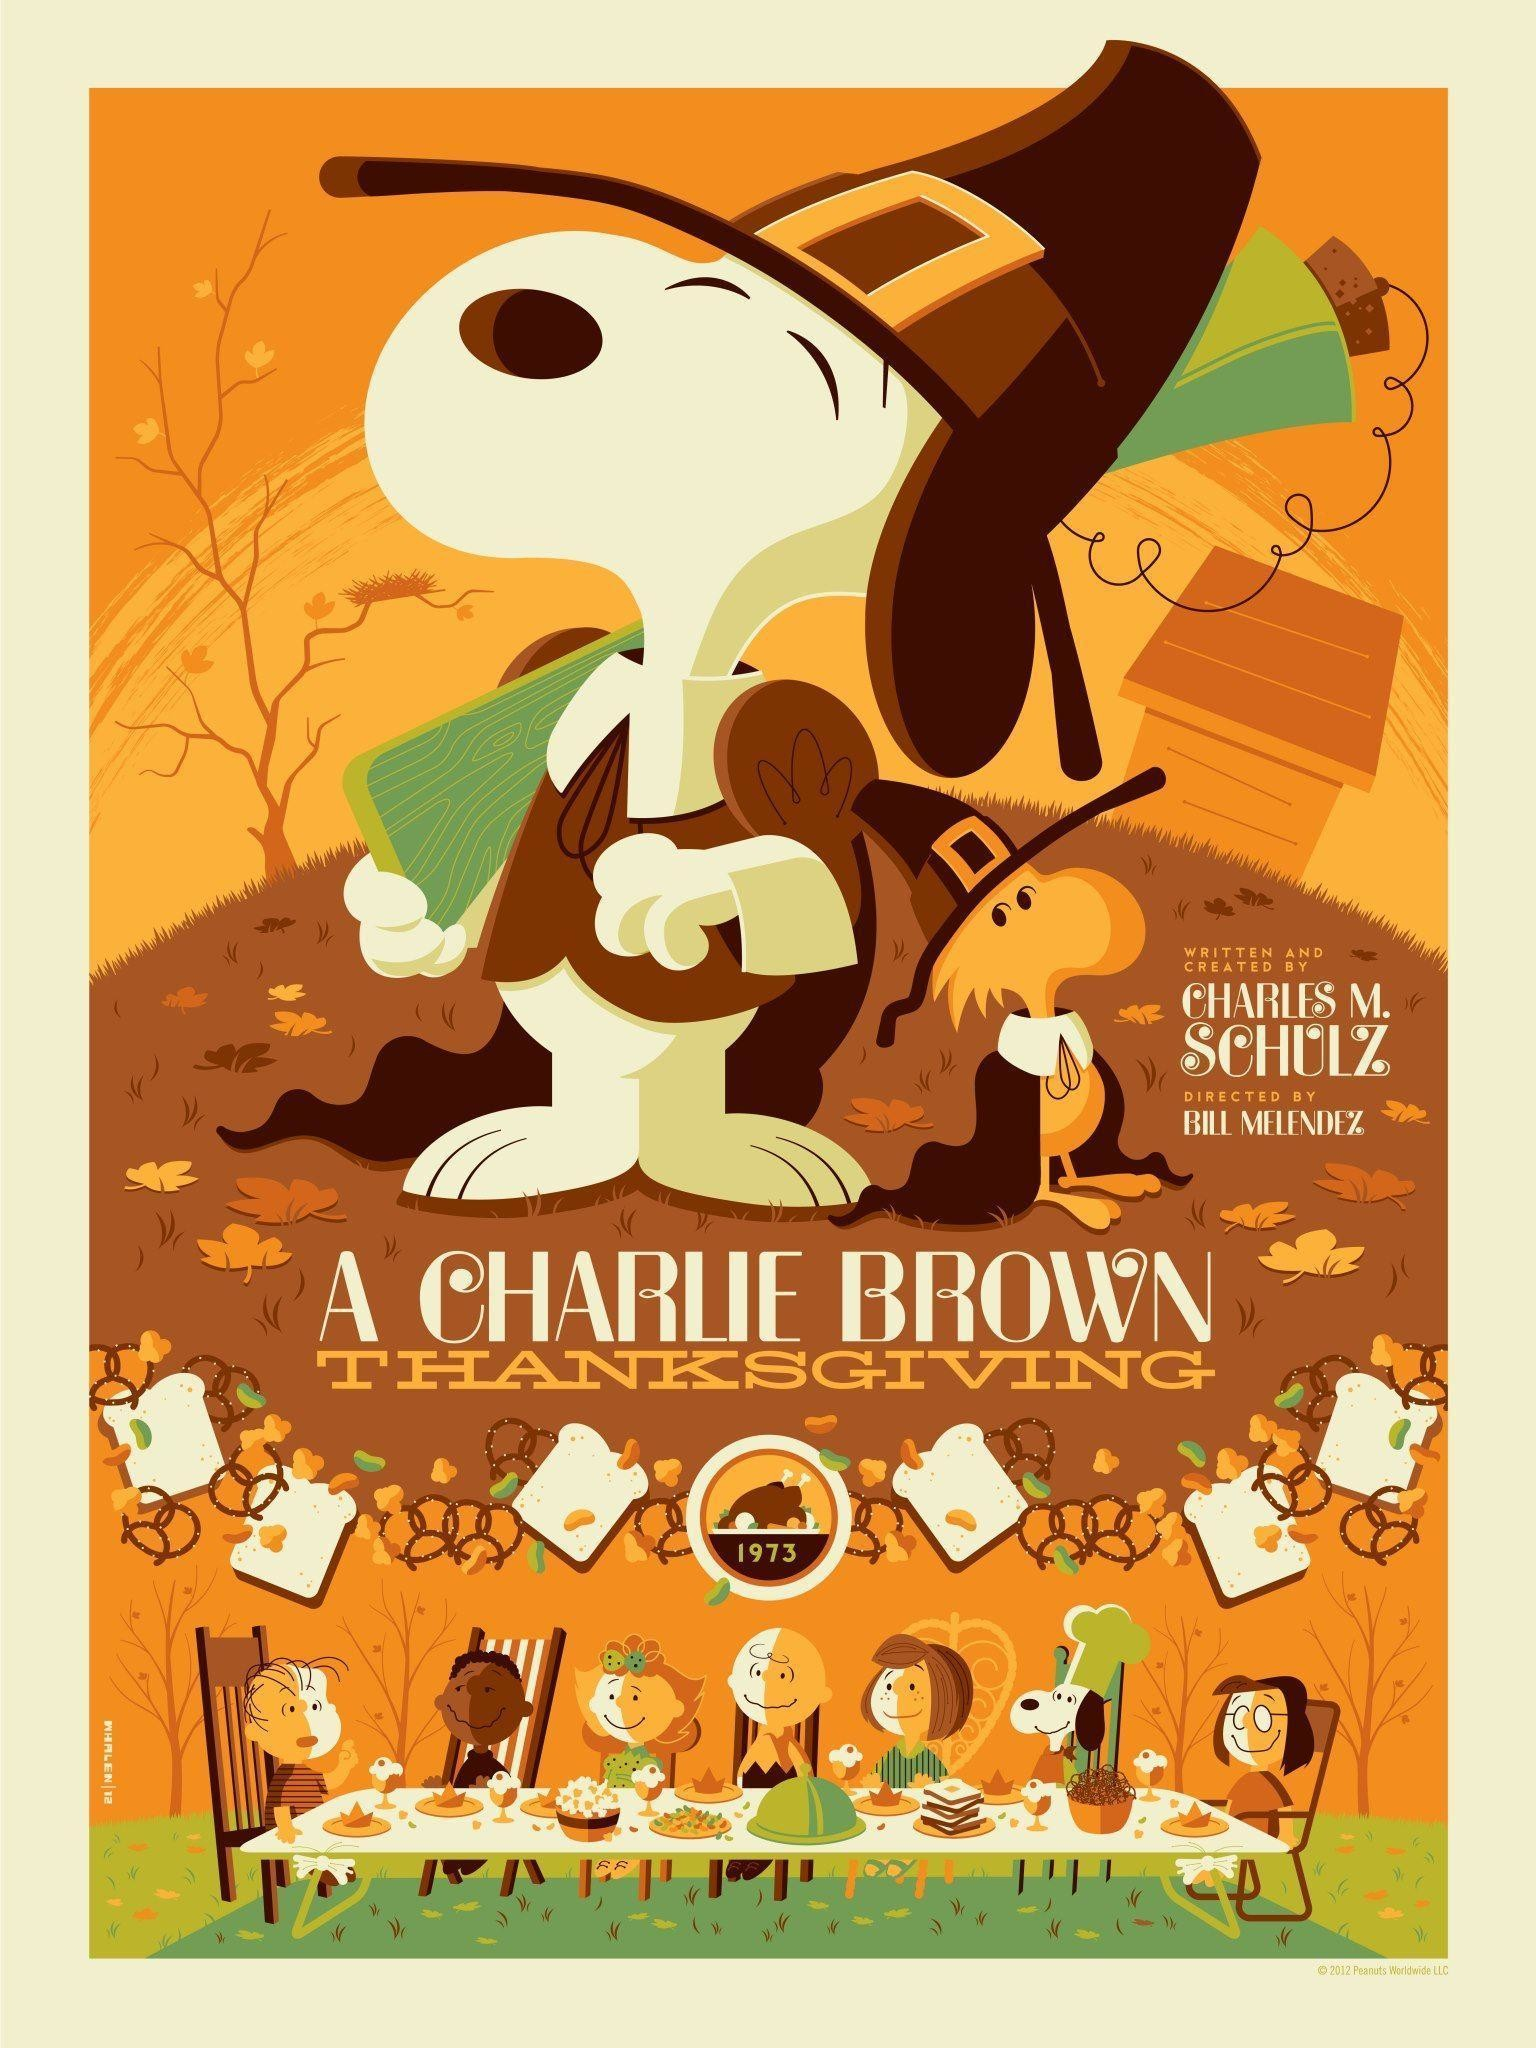 Thanksgiving Holiday Charlie Brown 27776 Hd Wallpapers - Charlie Brown Thanksgiving Poster - HD Wallpaper